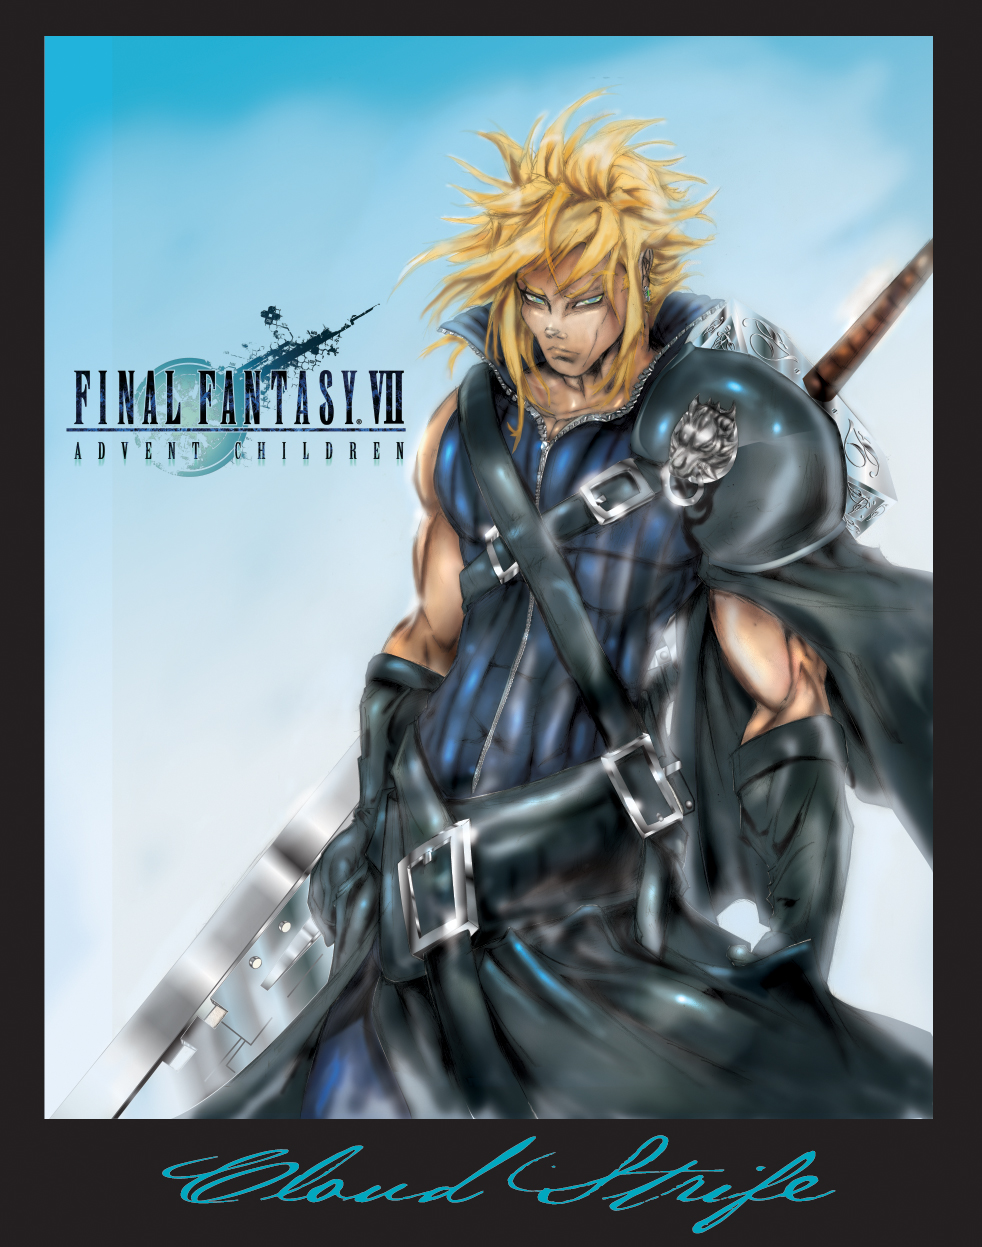 Cloud Strife His Story By Justart27 On Deviantart